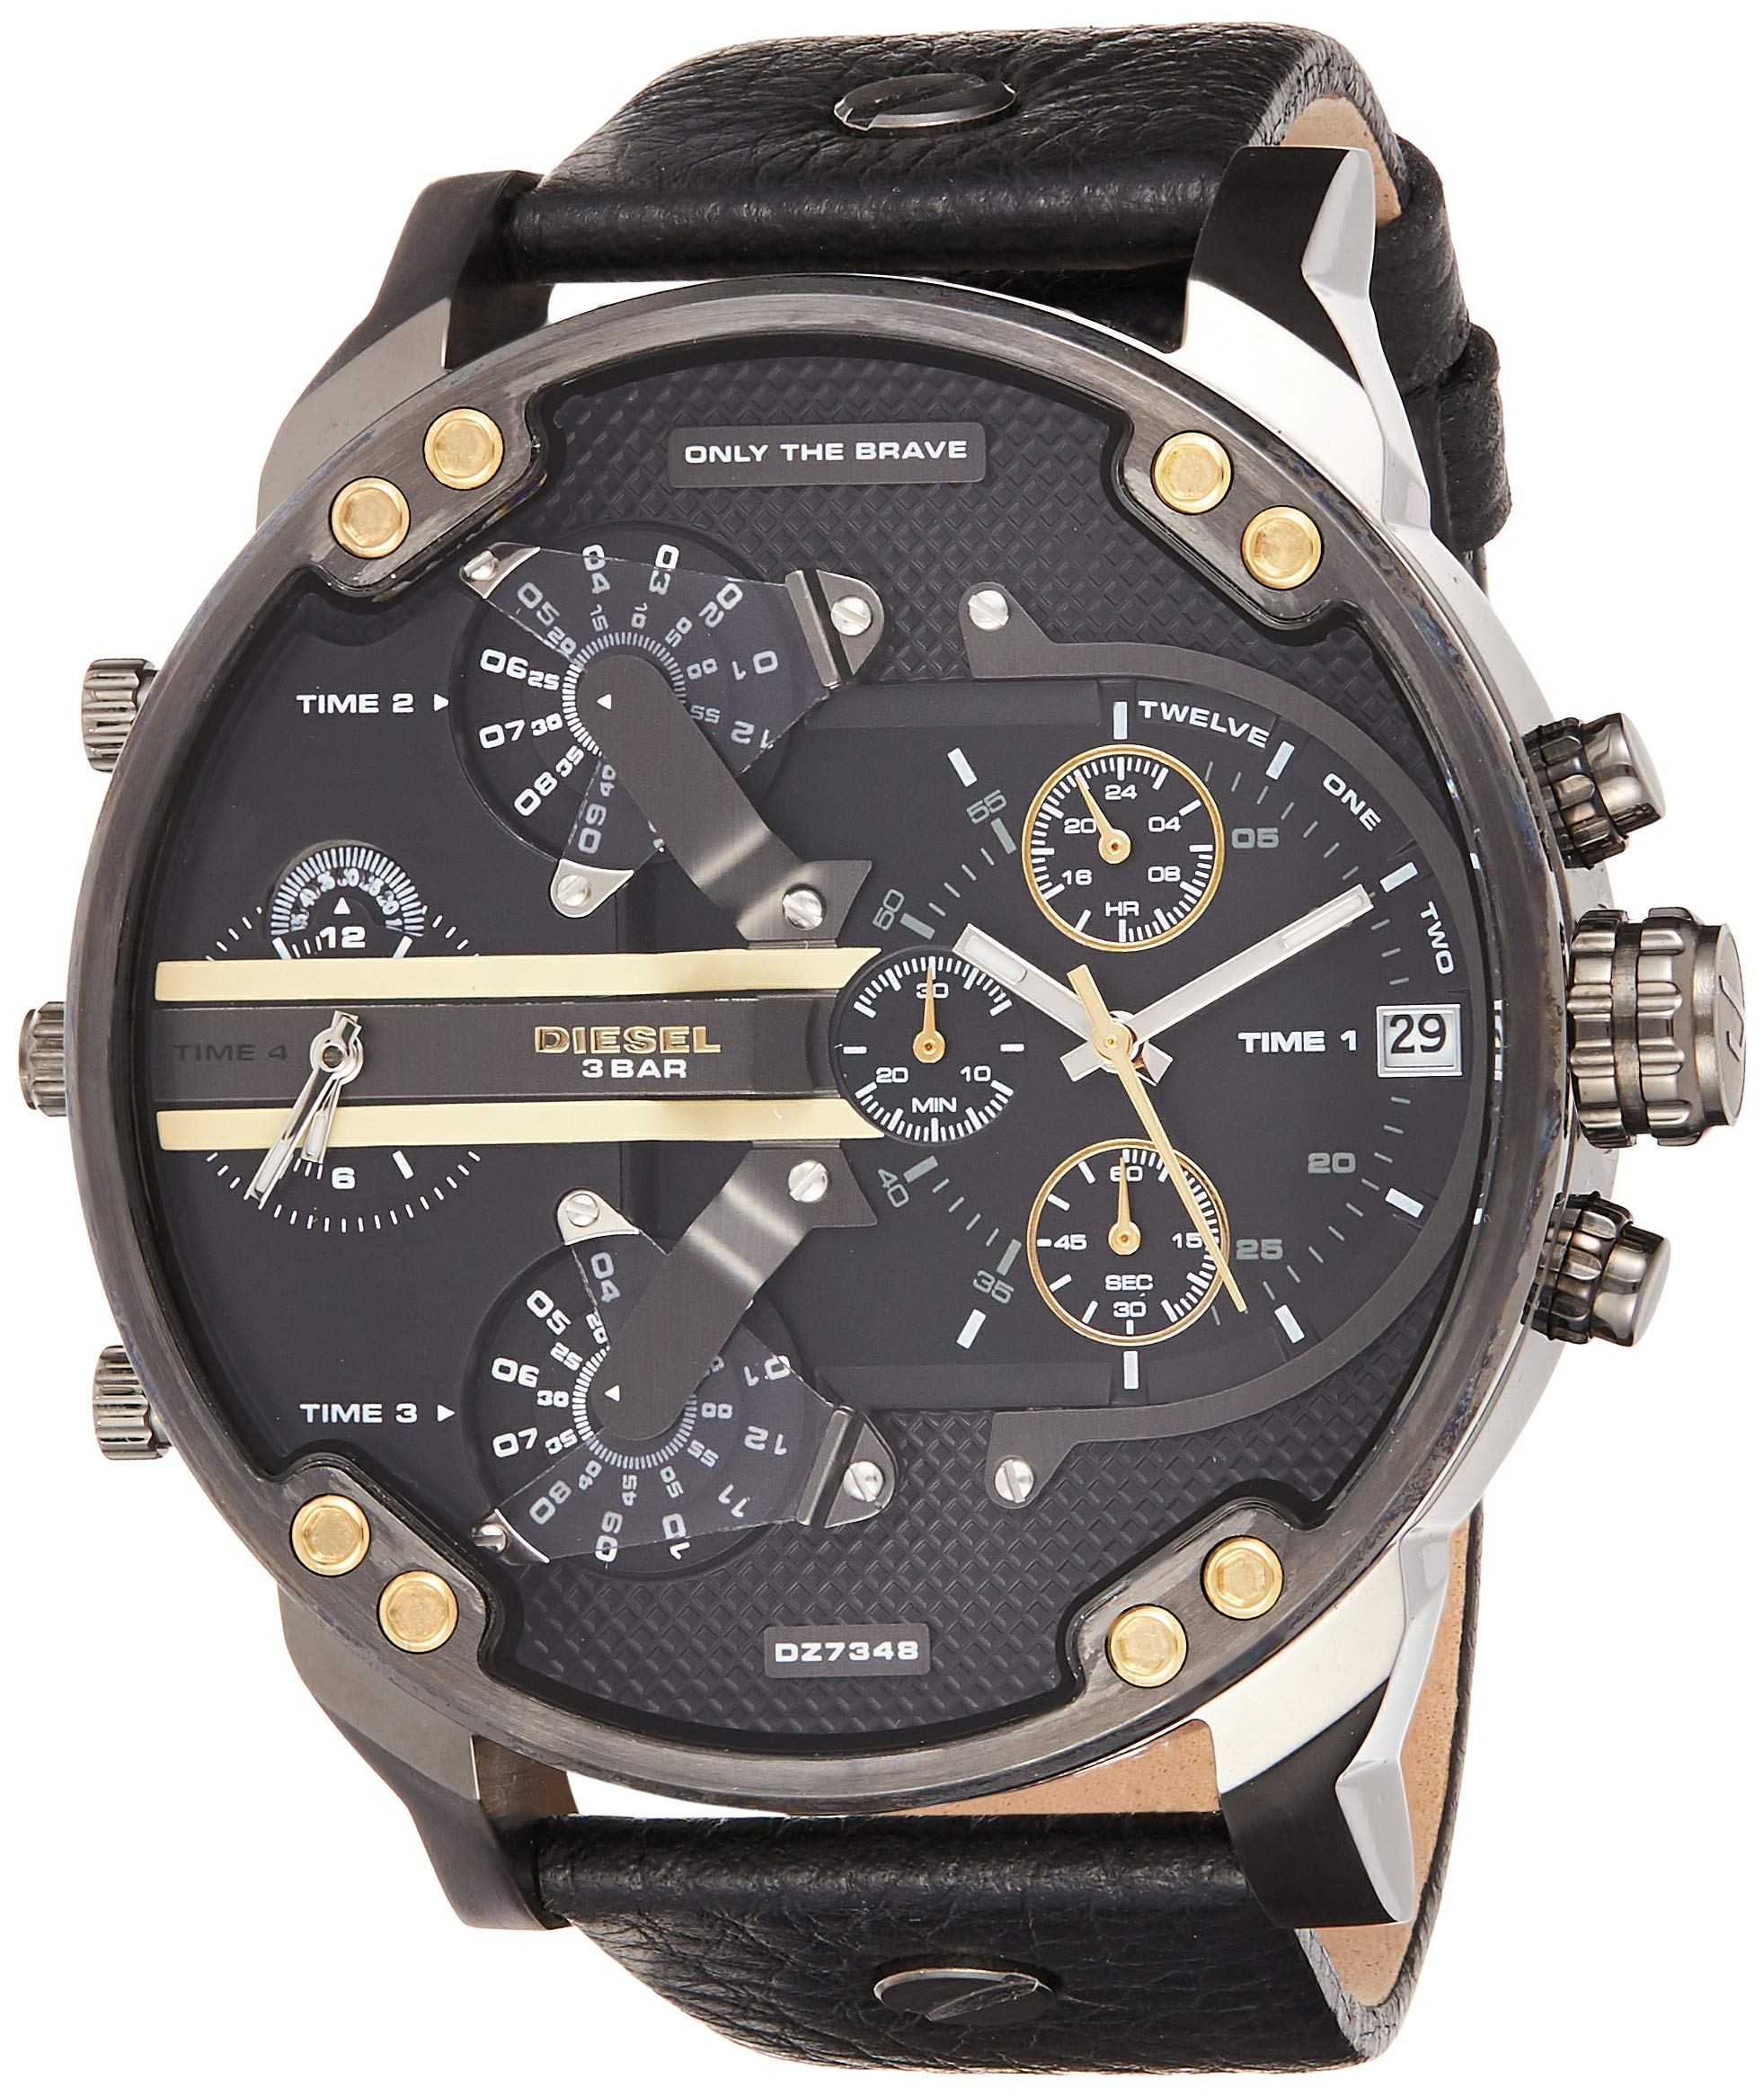 Diesel Men's Mr Daddy 2.0 Quartz Stainless Steel and Leather Chronograph Watch, Color: Grey, Black (Model: DZ7348) by Diesel